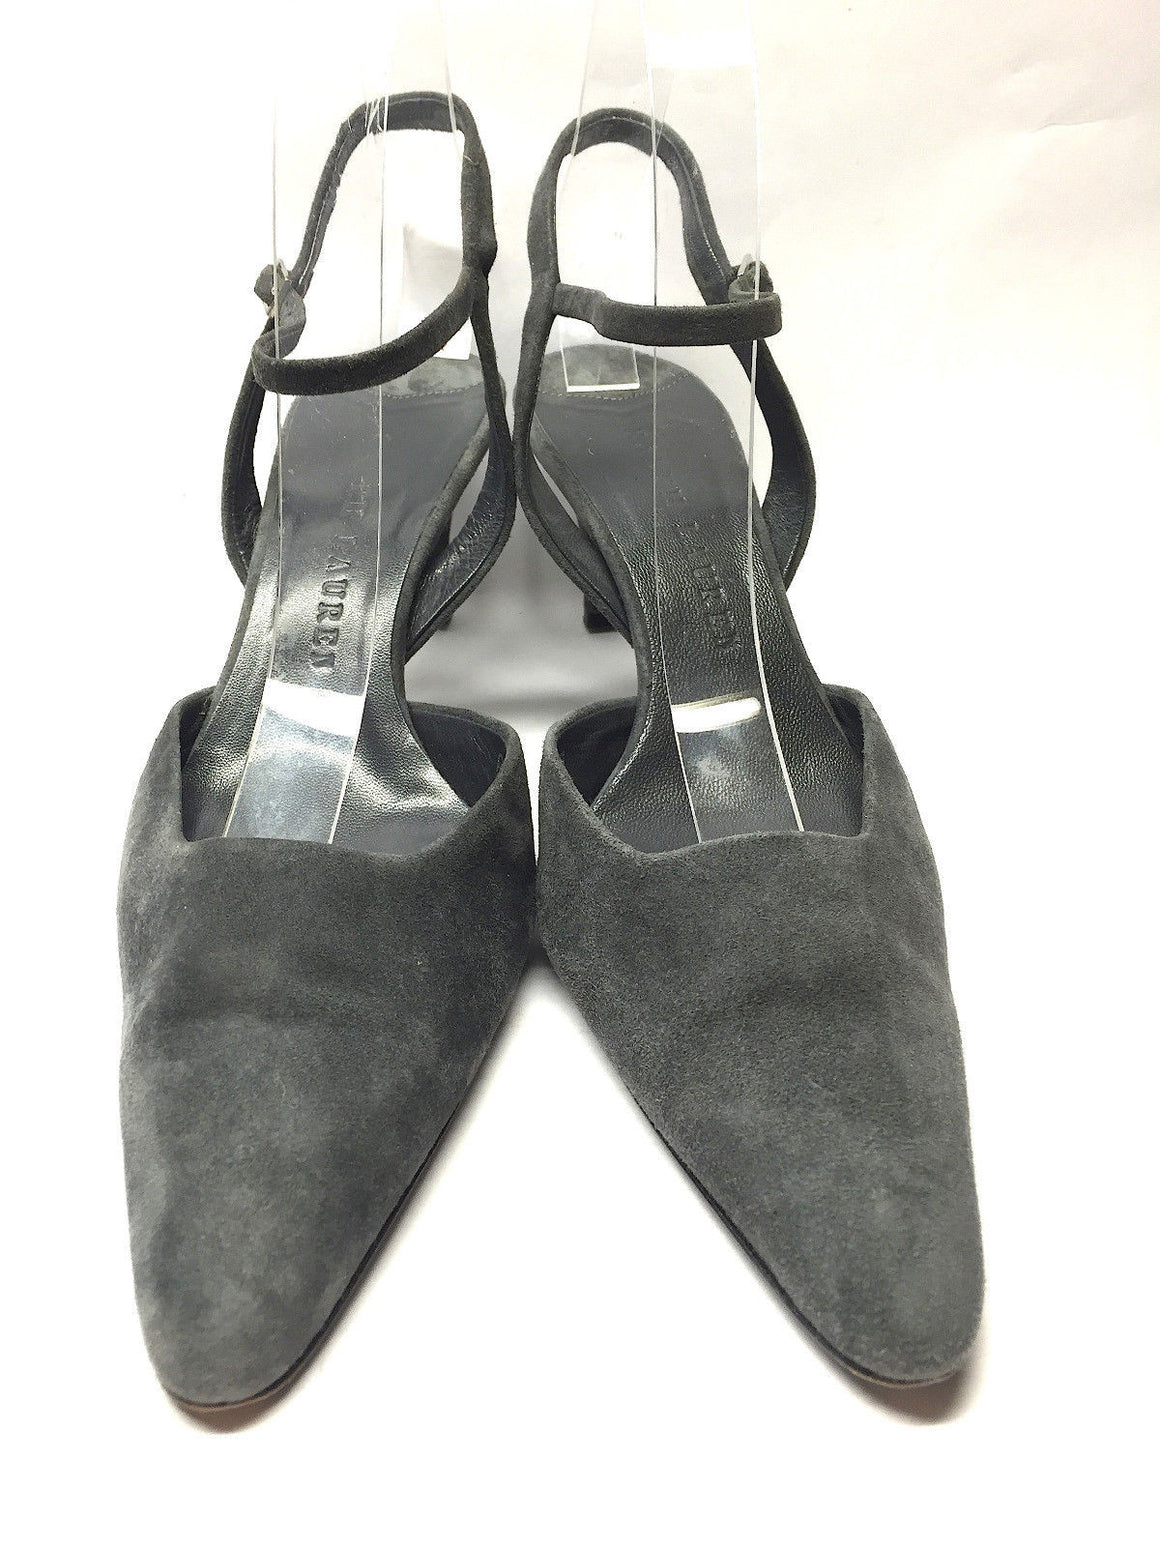 bisbiz.com RALPH LAUREN  Graphite-Gray Suede Ankle Strap  Heel Slingback Pumps Shoes  Size: 7 - Bis Luxury Resale